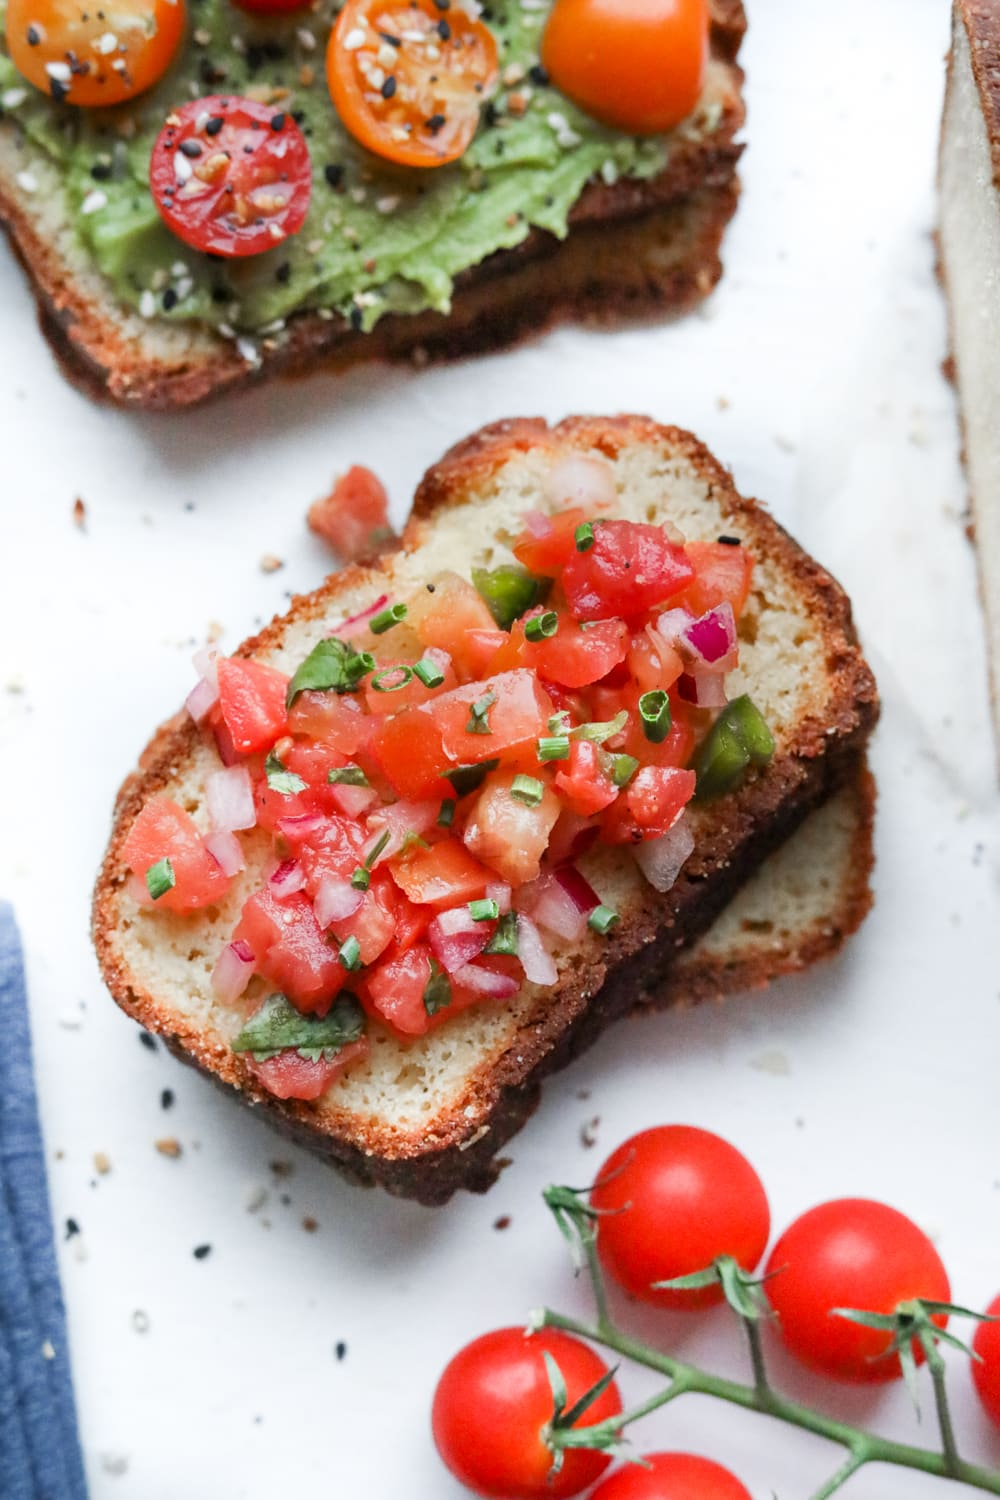 A slice of bread topped with salsa